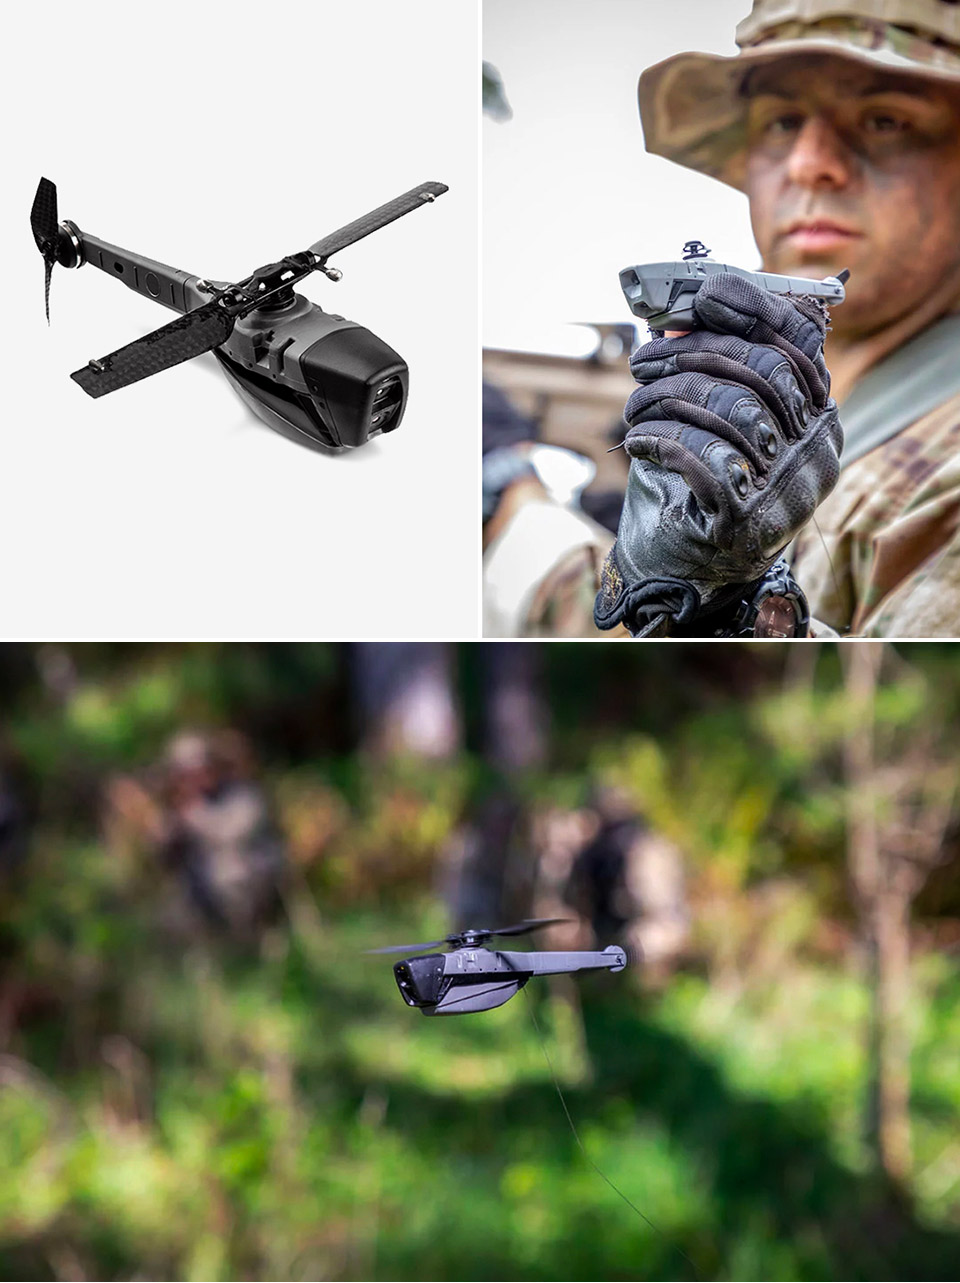 FLIR Black Hornet Smallest Drone